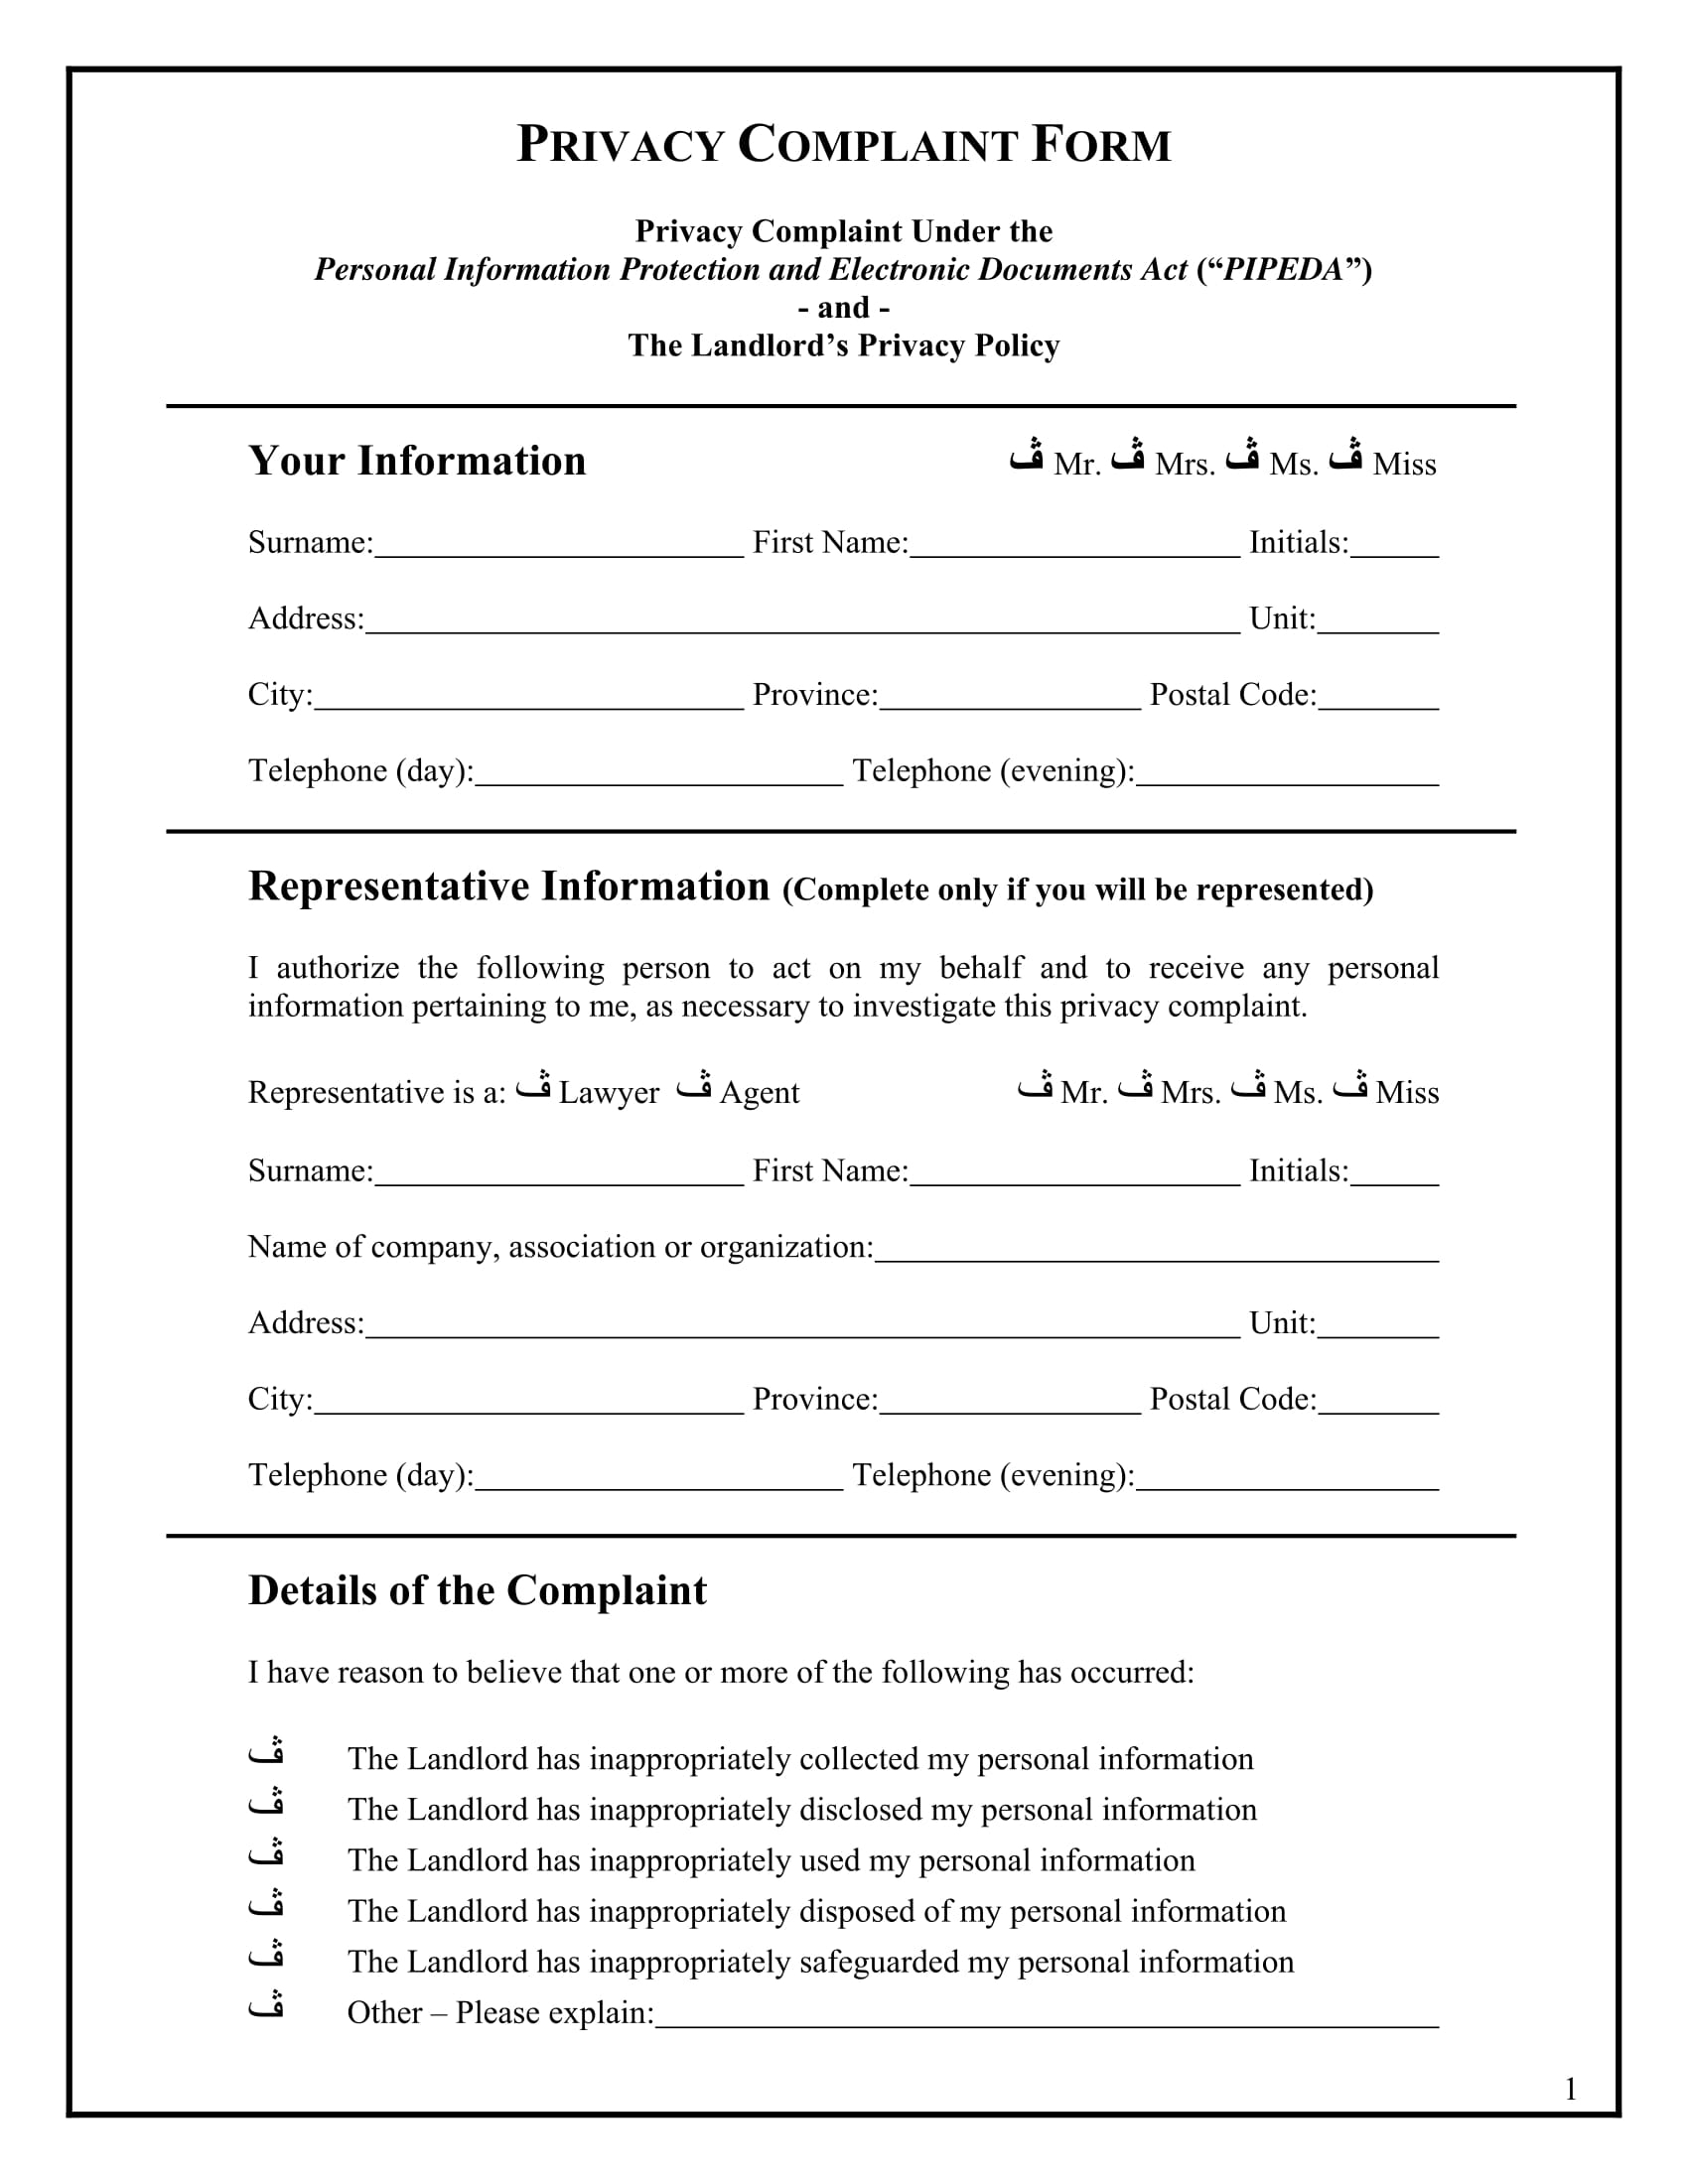 landlord privacy complaint form 1